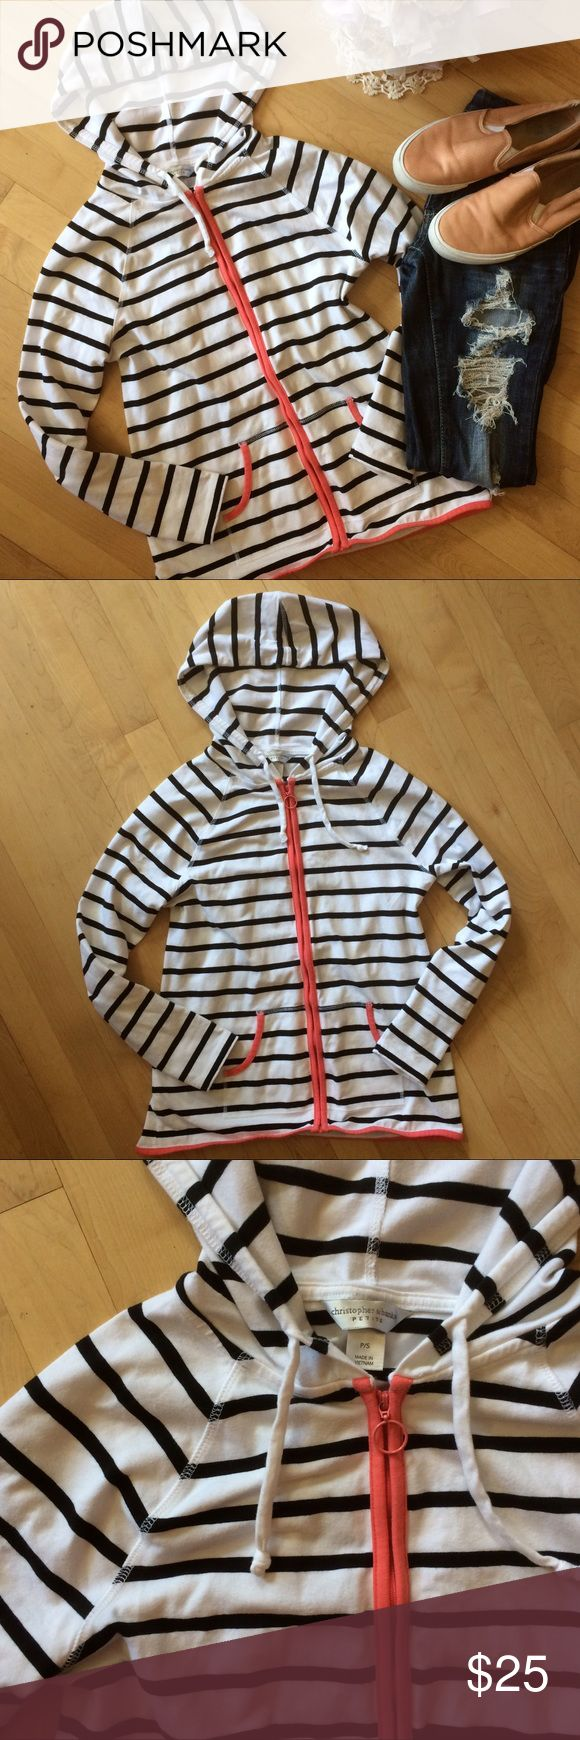 NWOT CUTEST BLack + white hooded zip up sweatshirt The cuuuuutest black and white Striped zip up hoodie. Coral lines the zipper and pockets, with a super cute circle zipper. This is NWOT- removed them and washed, and tried on a million times but never ended up wearing because it doesn't fit me quite right ☹️ someone else will LOVE it. Raglan style sleeves with hood. Drawstring hood. Christopher & Banks Tops Sweatshirts & Hoodies